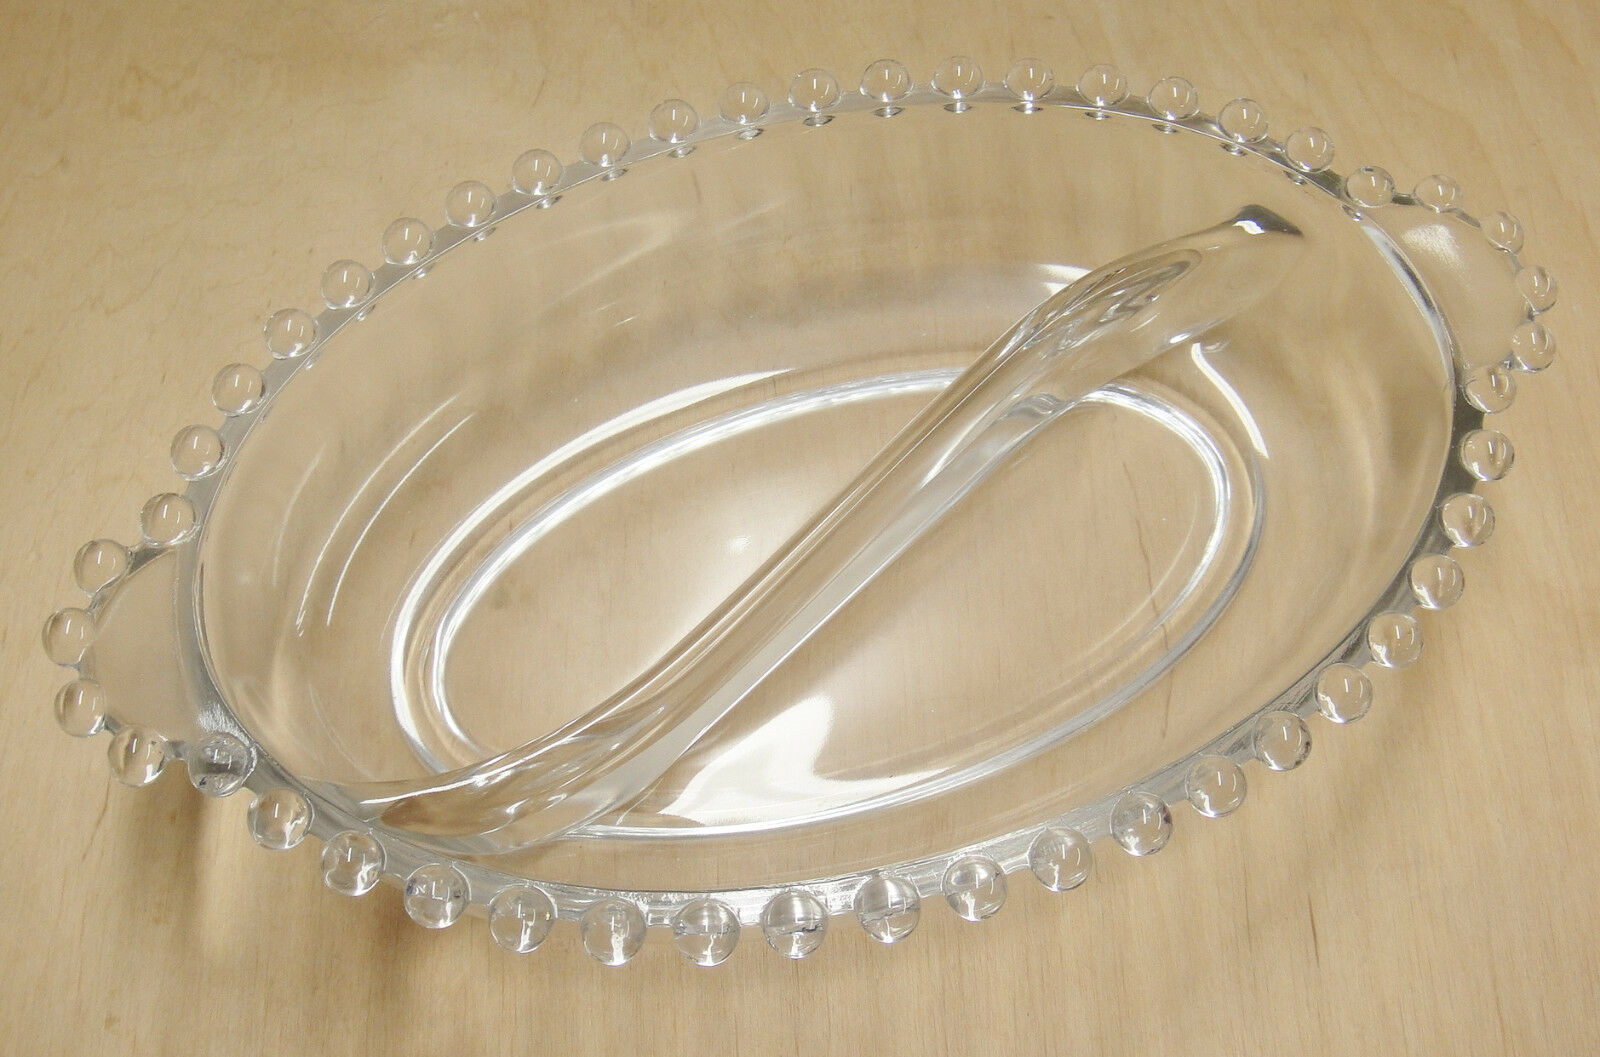 Glass Candlewick Divided Oval Relish Dish Lugged Handles 6.5 x 4.5 Beaded Edge